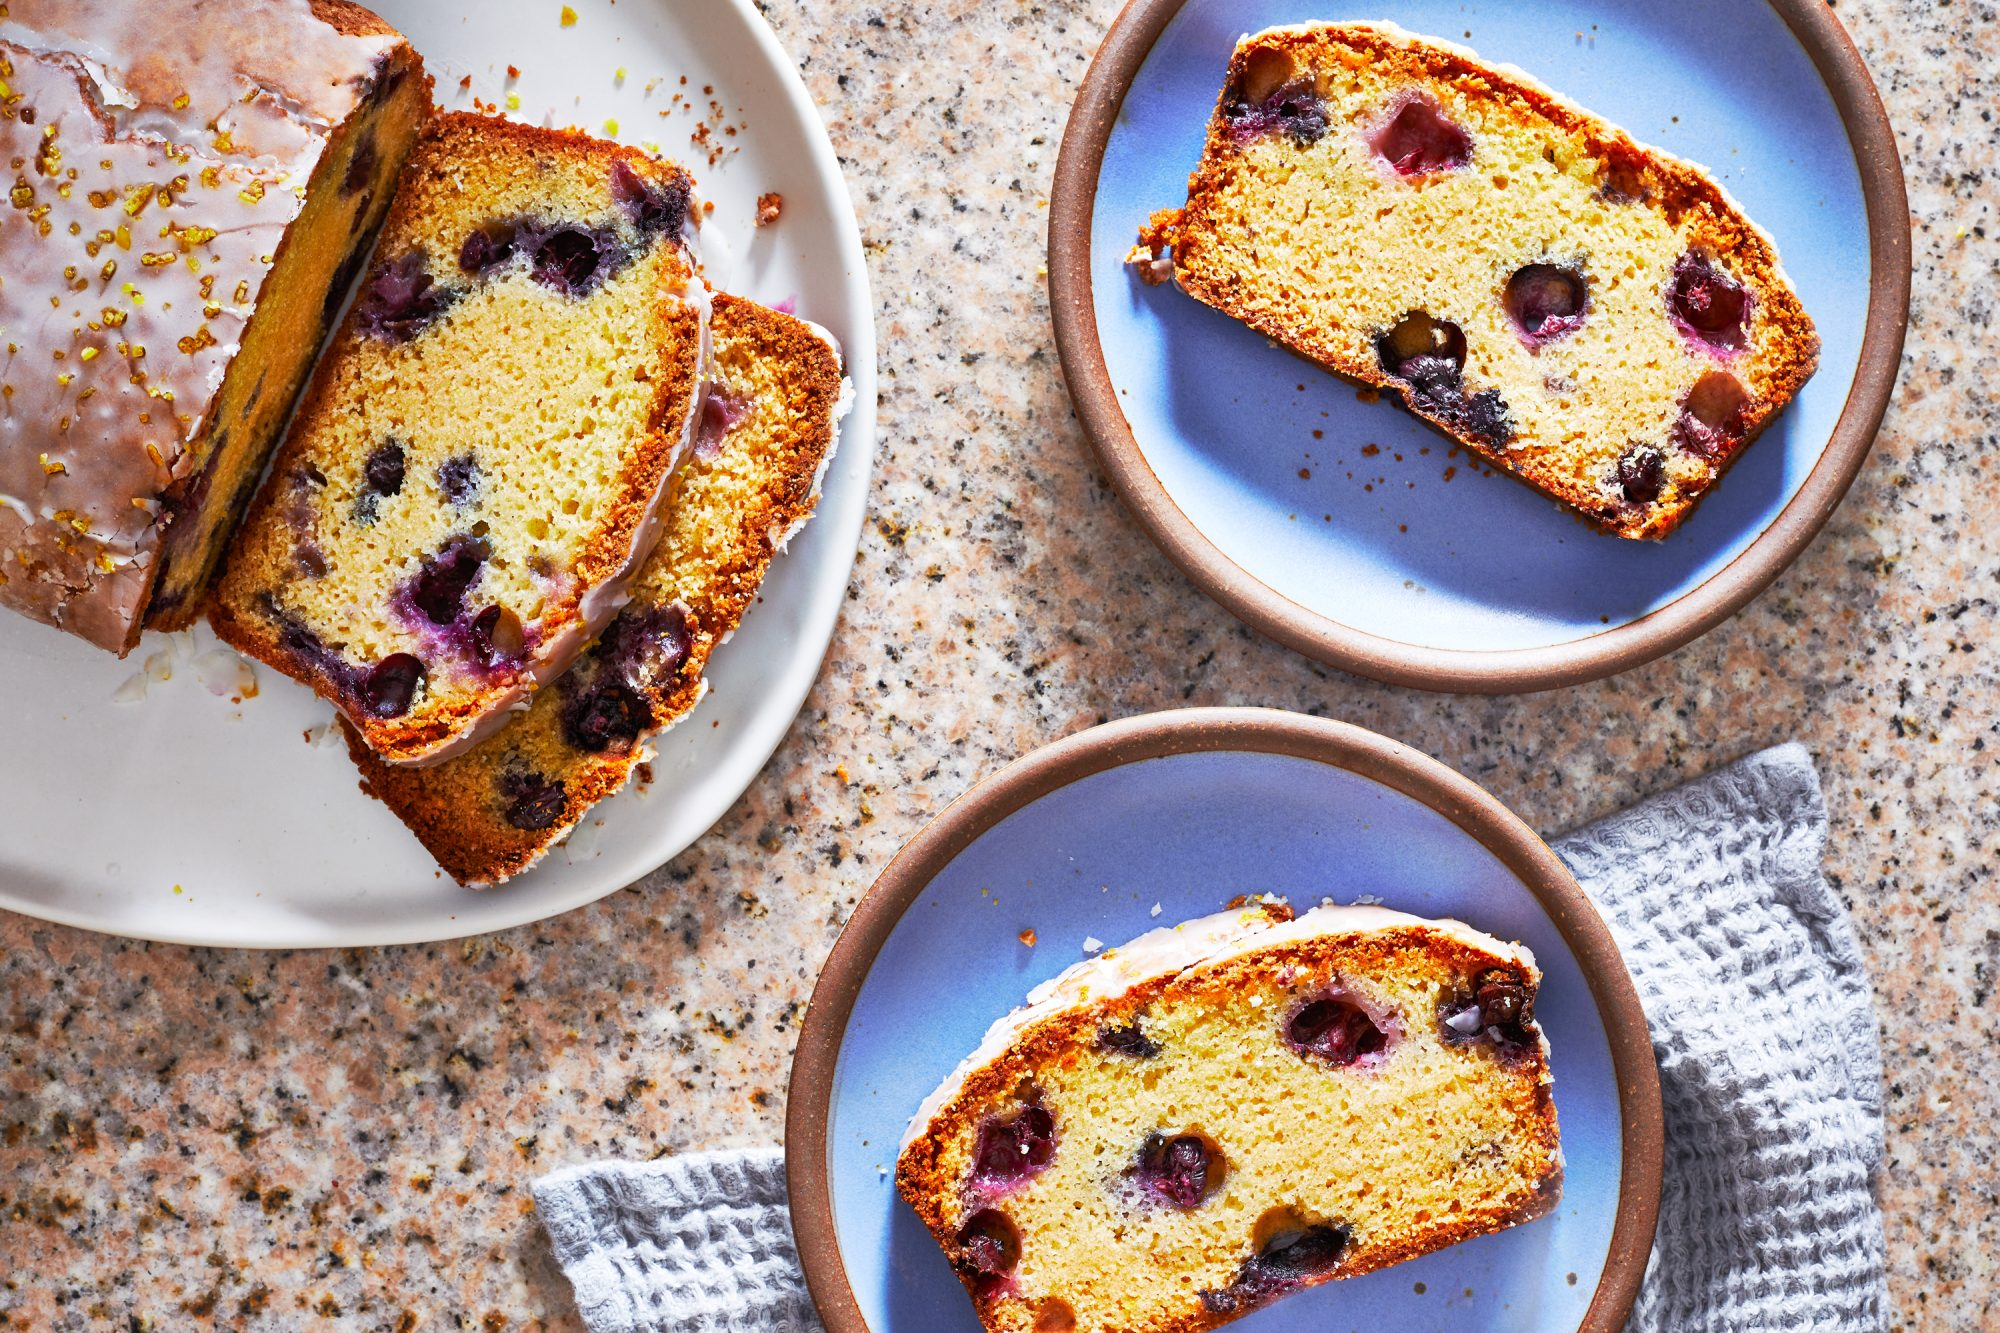 Lemon Blueberry Cake with Lemon-Zest Glaze